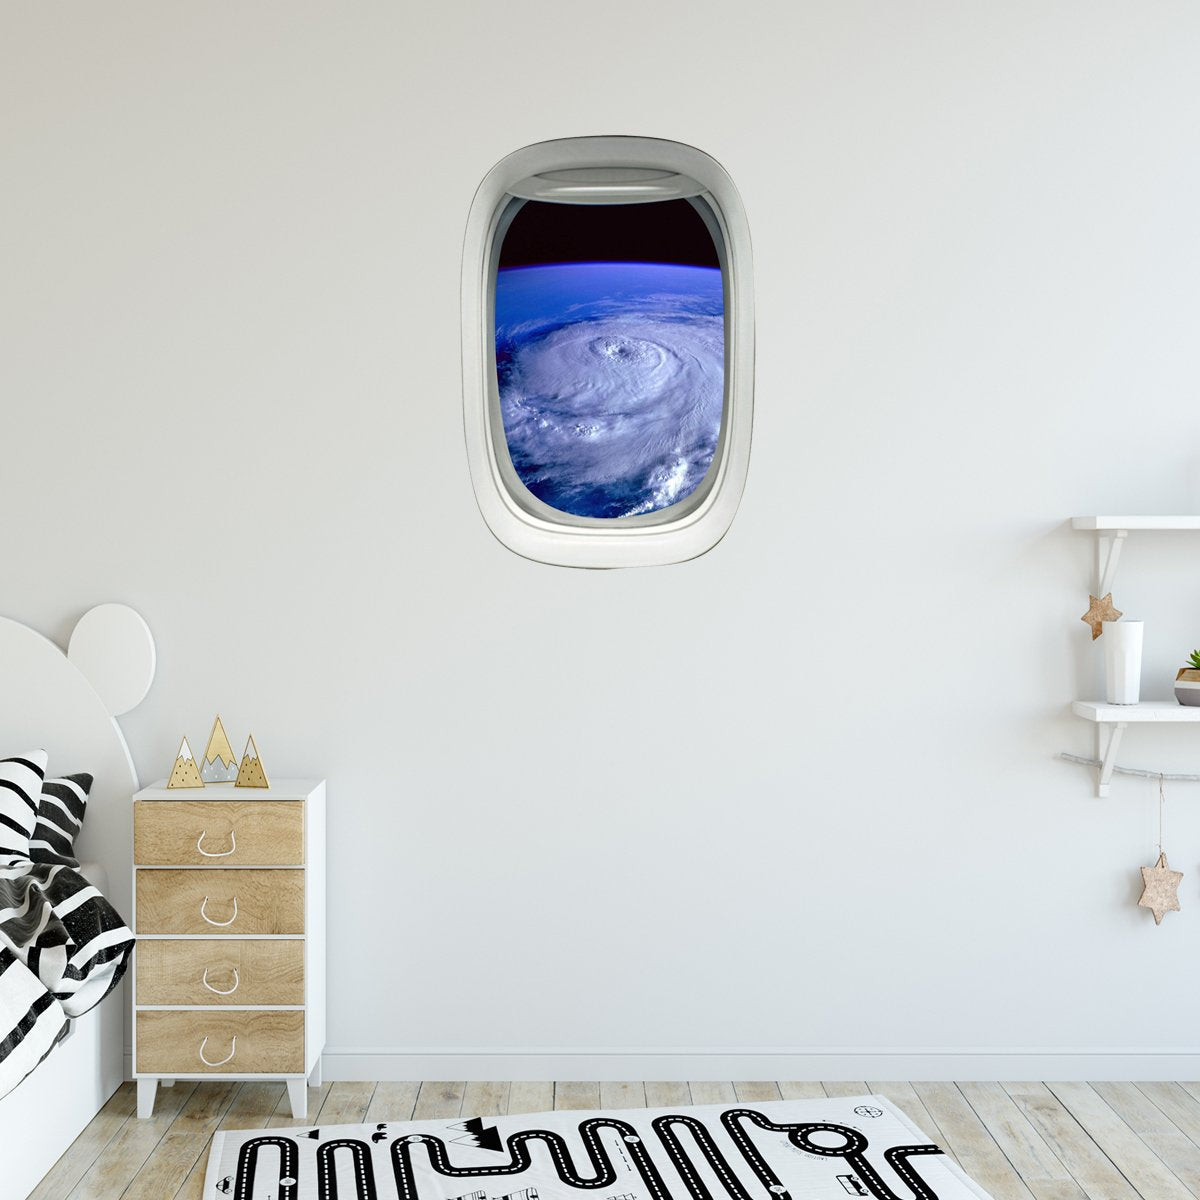 VWAQ Aerial Hurricane View Peel and Stick Vinyl Wall Decal - PW9 - VWAQ Vinyl Wall Art Quotes and Prints